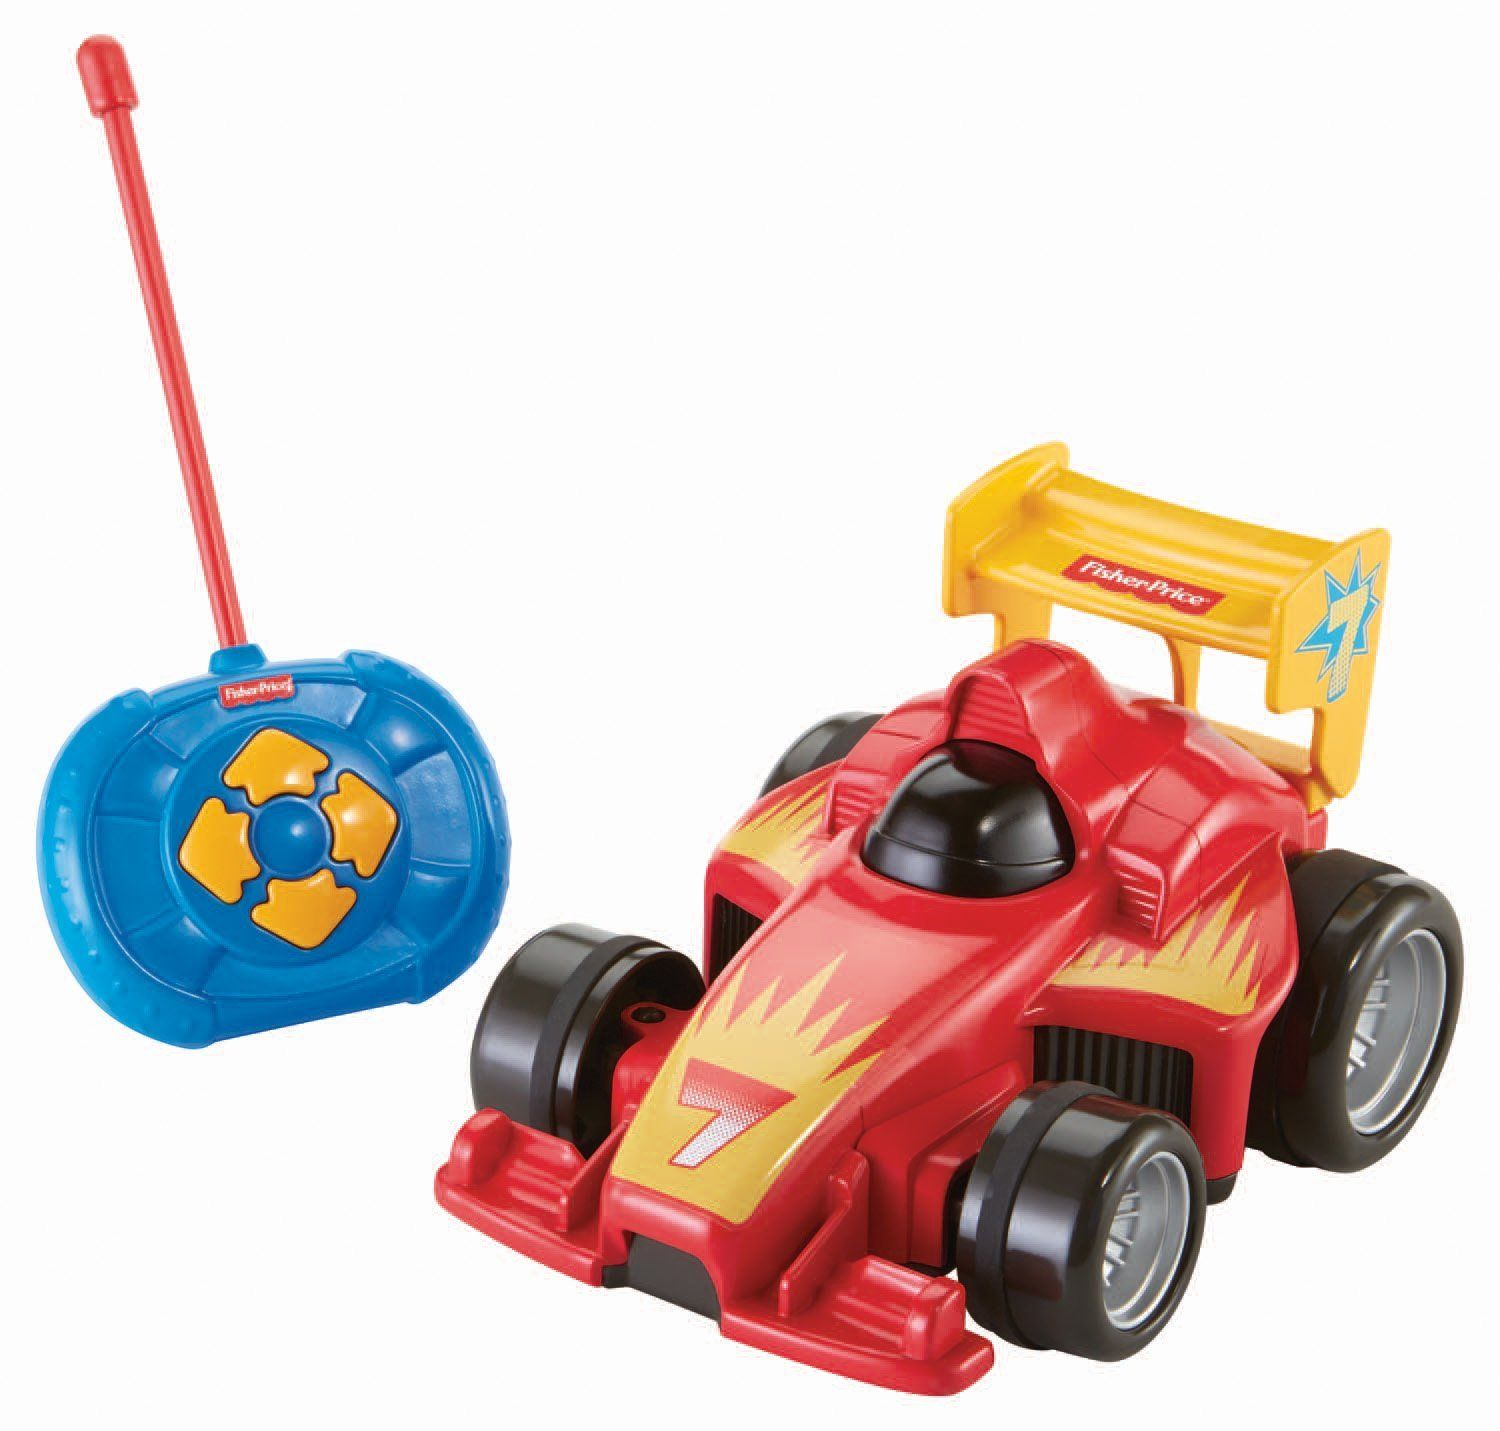 Check this Top 10 Best Remote Control Cars Toys For Kid Reviews In